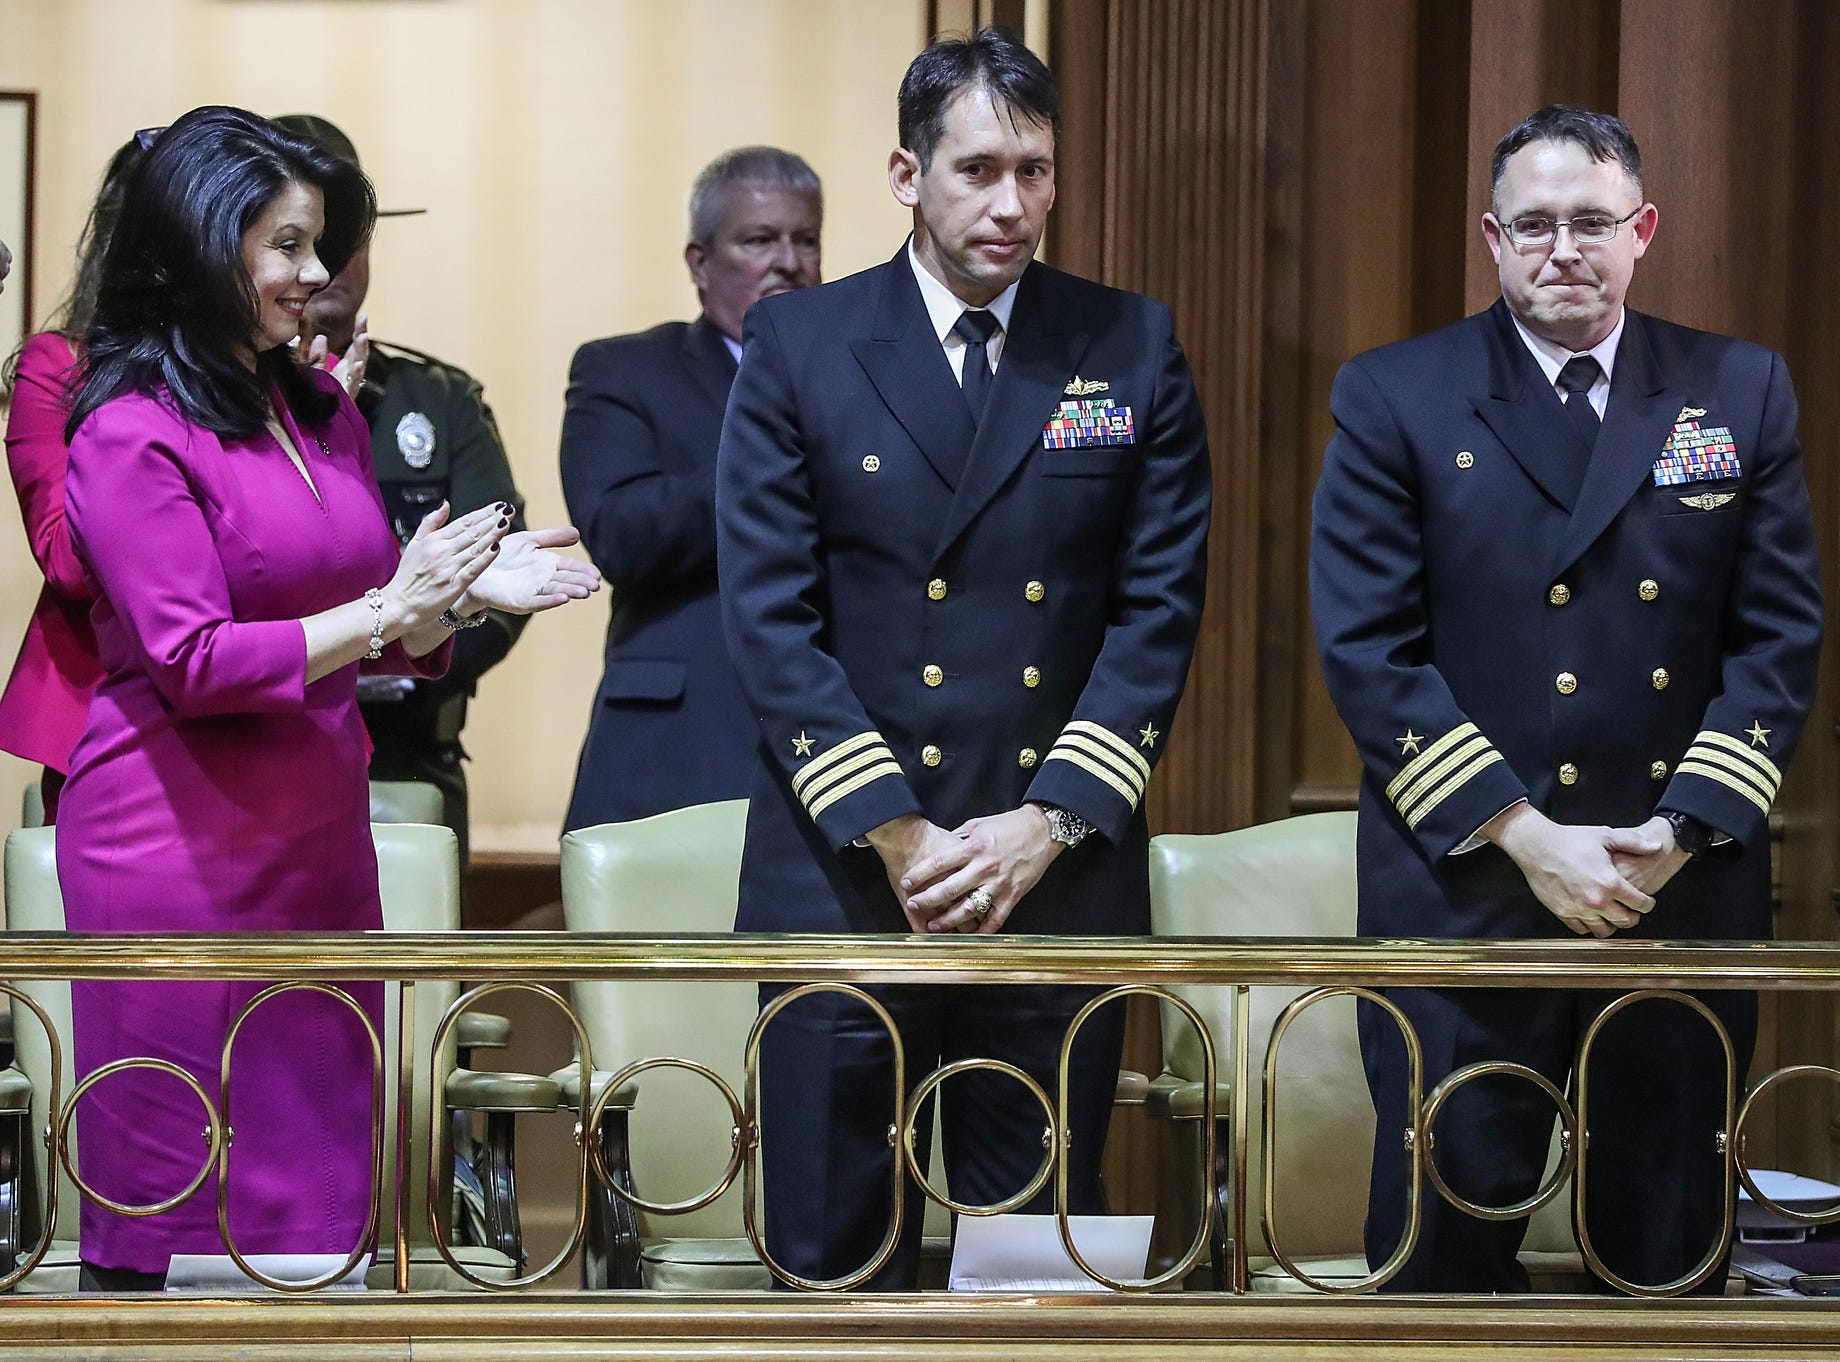 From left, Janet Holcomb stands with the Indiana General Assembly to honor Lt. Cmdr. Colin Kane and Cmdr. Dave Grogan, during the annual State of the State address at the Indiana Statehouse in Indianapolis, Tuesday, Jan. 15, 2019.